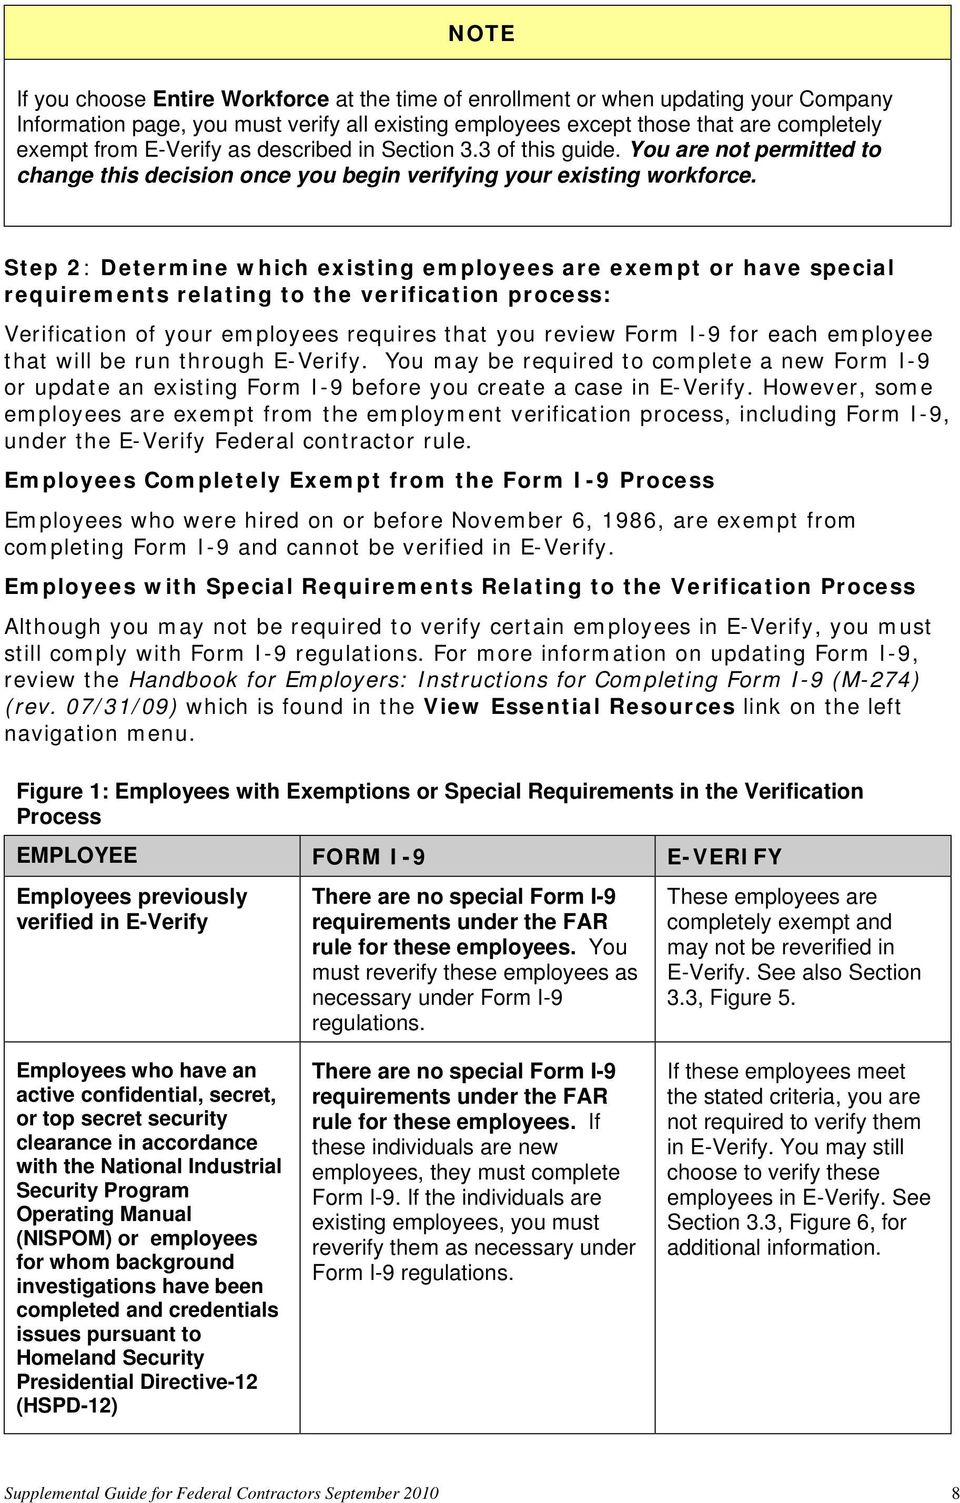 Step 2: Determine which existing employees are exempt or have special requirements relating to the verification process: Verification of your employees requires that you review Form I-9 for each